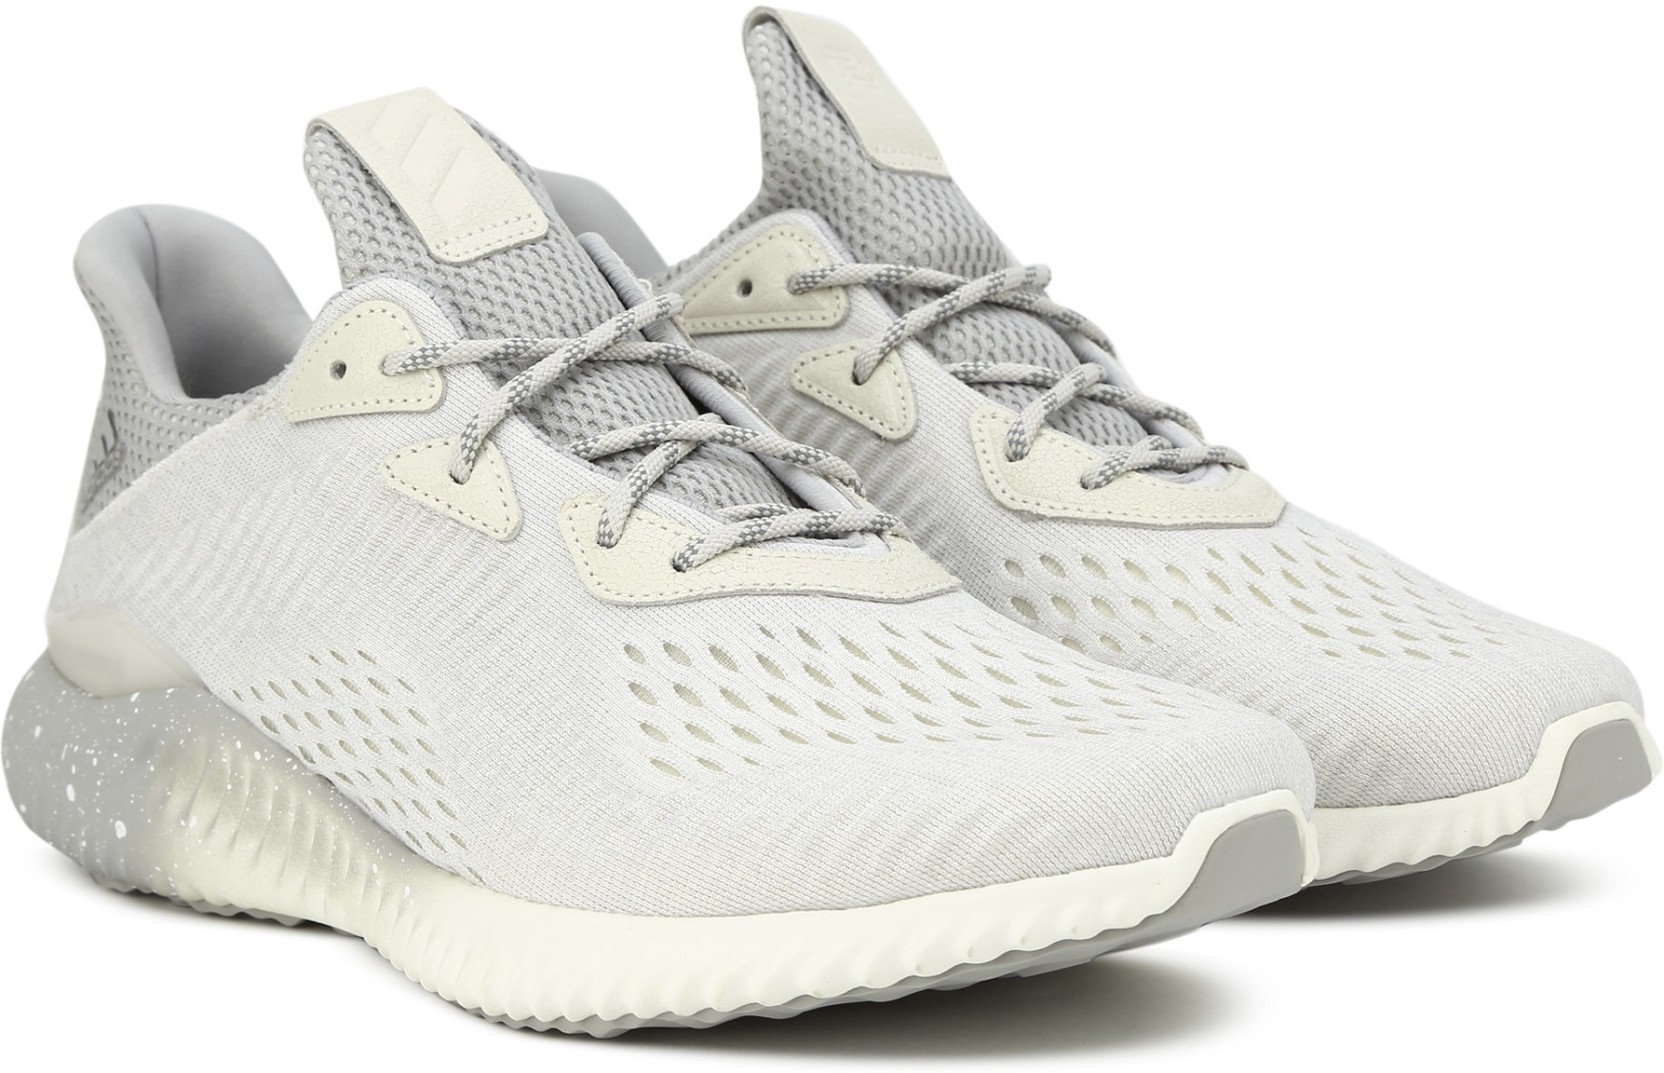 670cb48c5 ADIDAS ALPHABOUNCE 1 REIGNING CHAMP M Running Shoes For Men - Buy ...